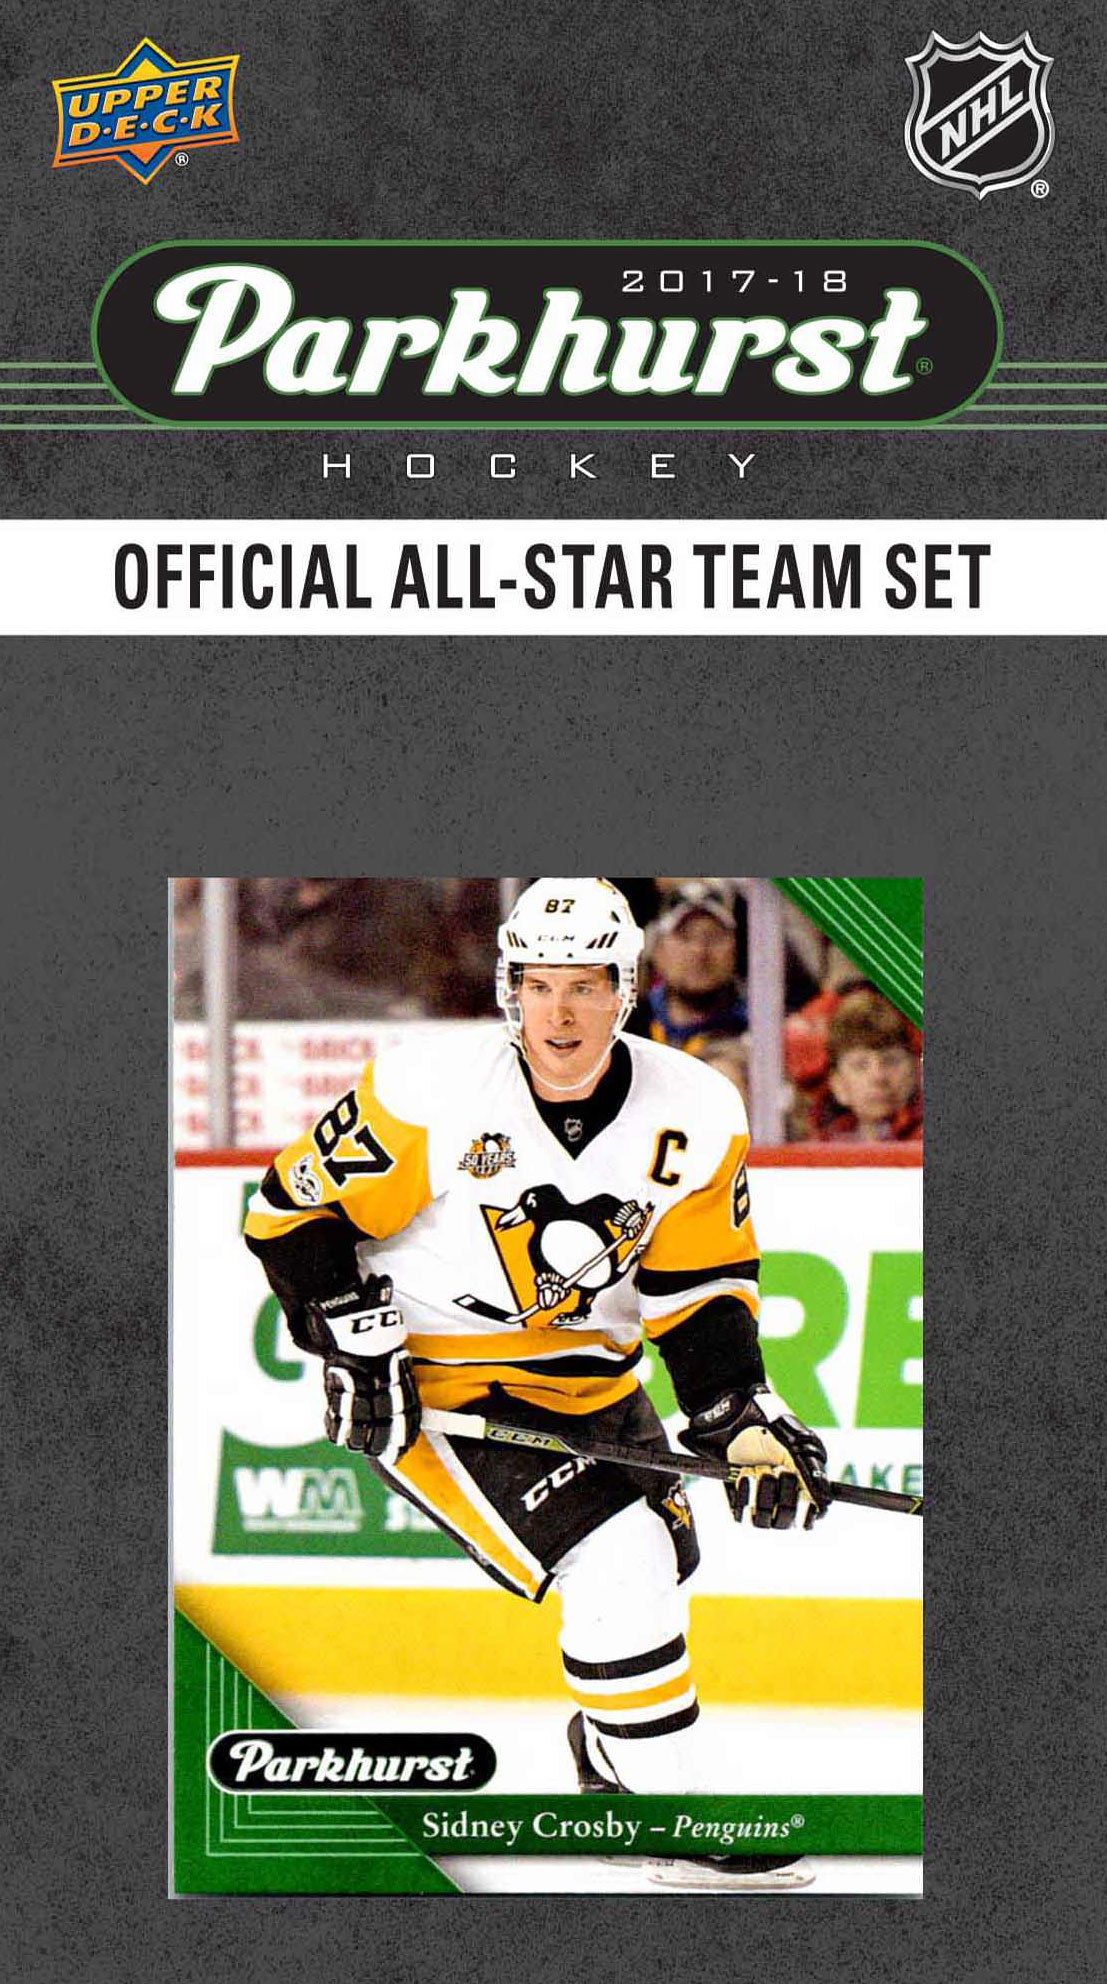 2017 2018 Upper Deck PARKHURST Official All Star Series NHL Hockey 10 Card Set Featuring... by Topps